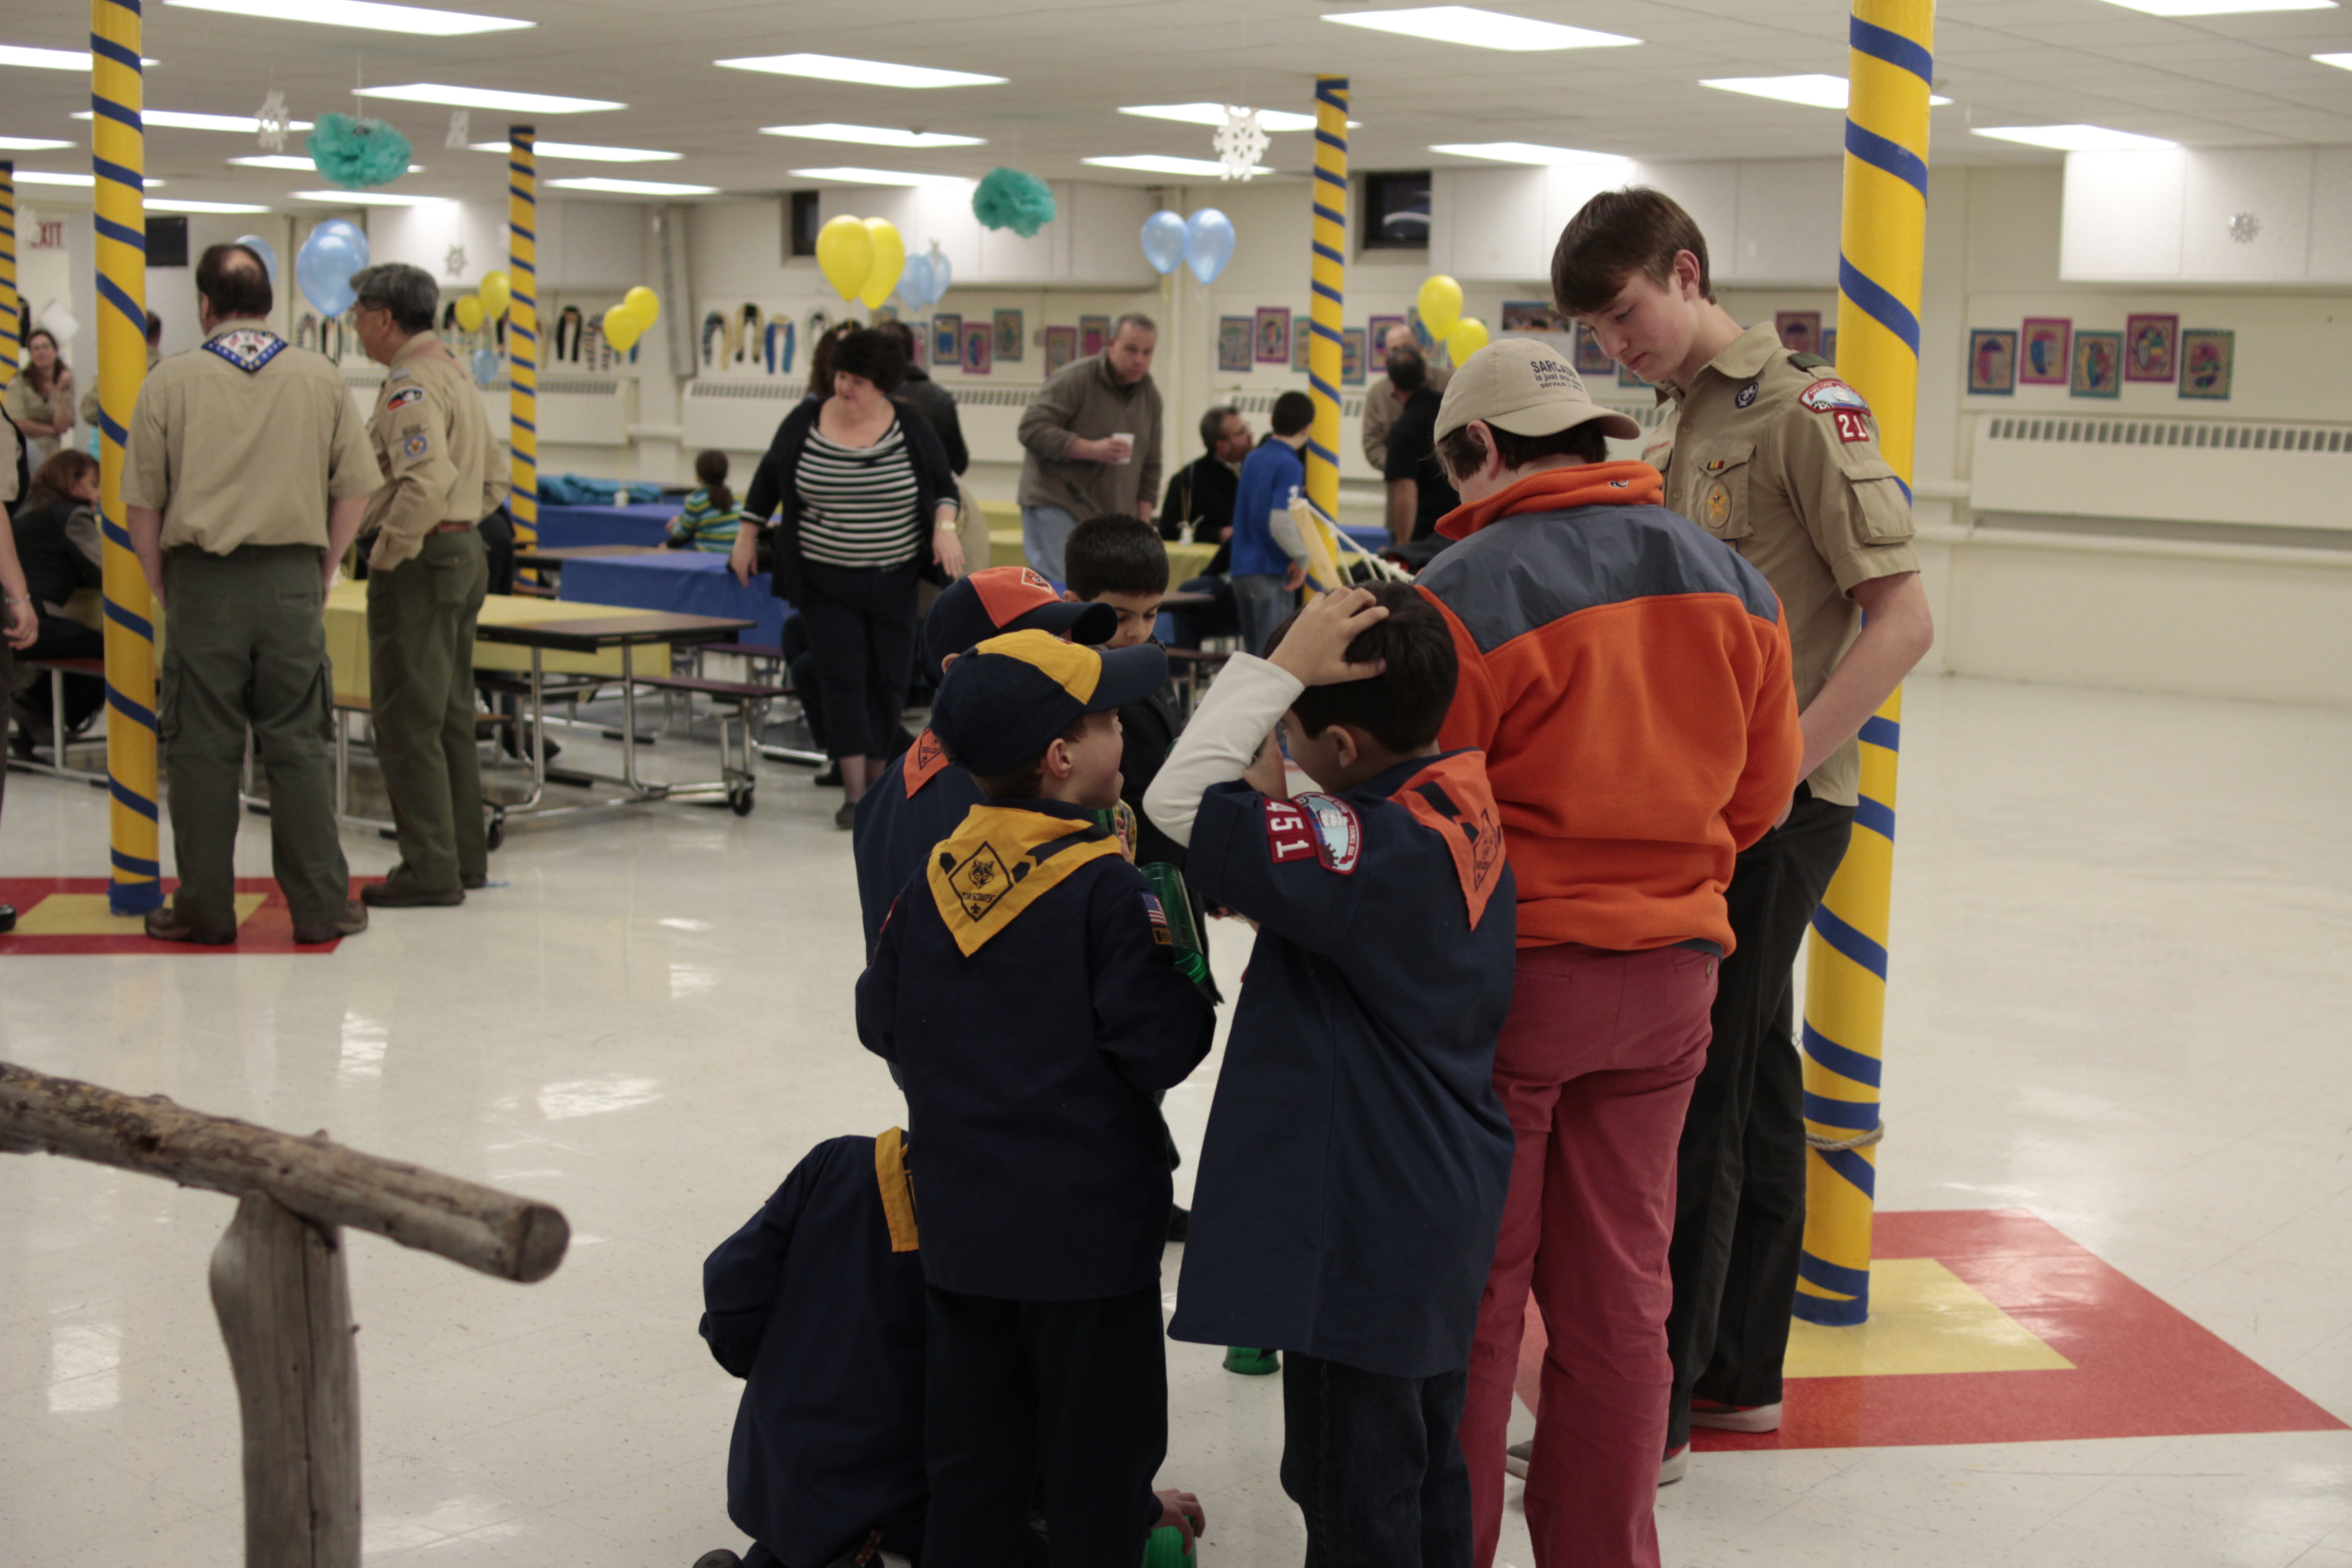 Assisting Pack 451